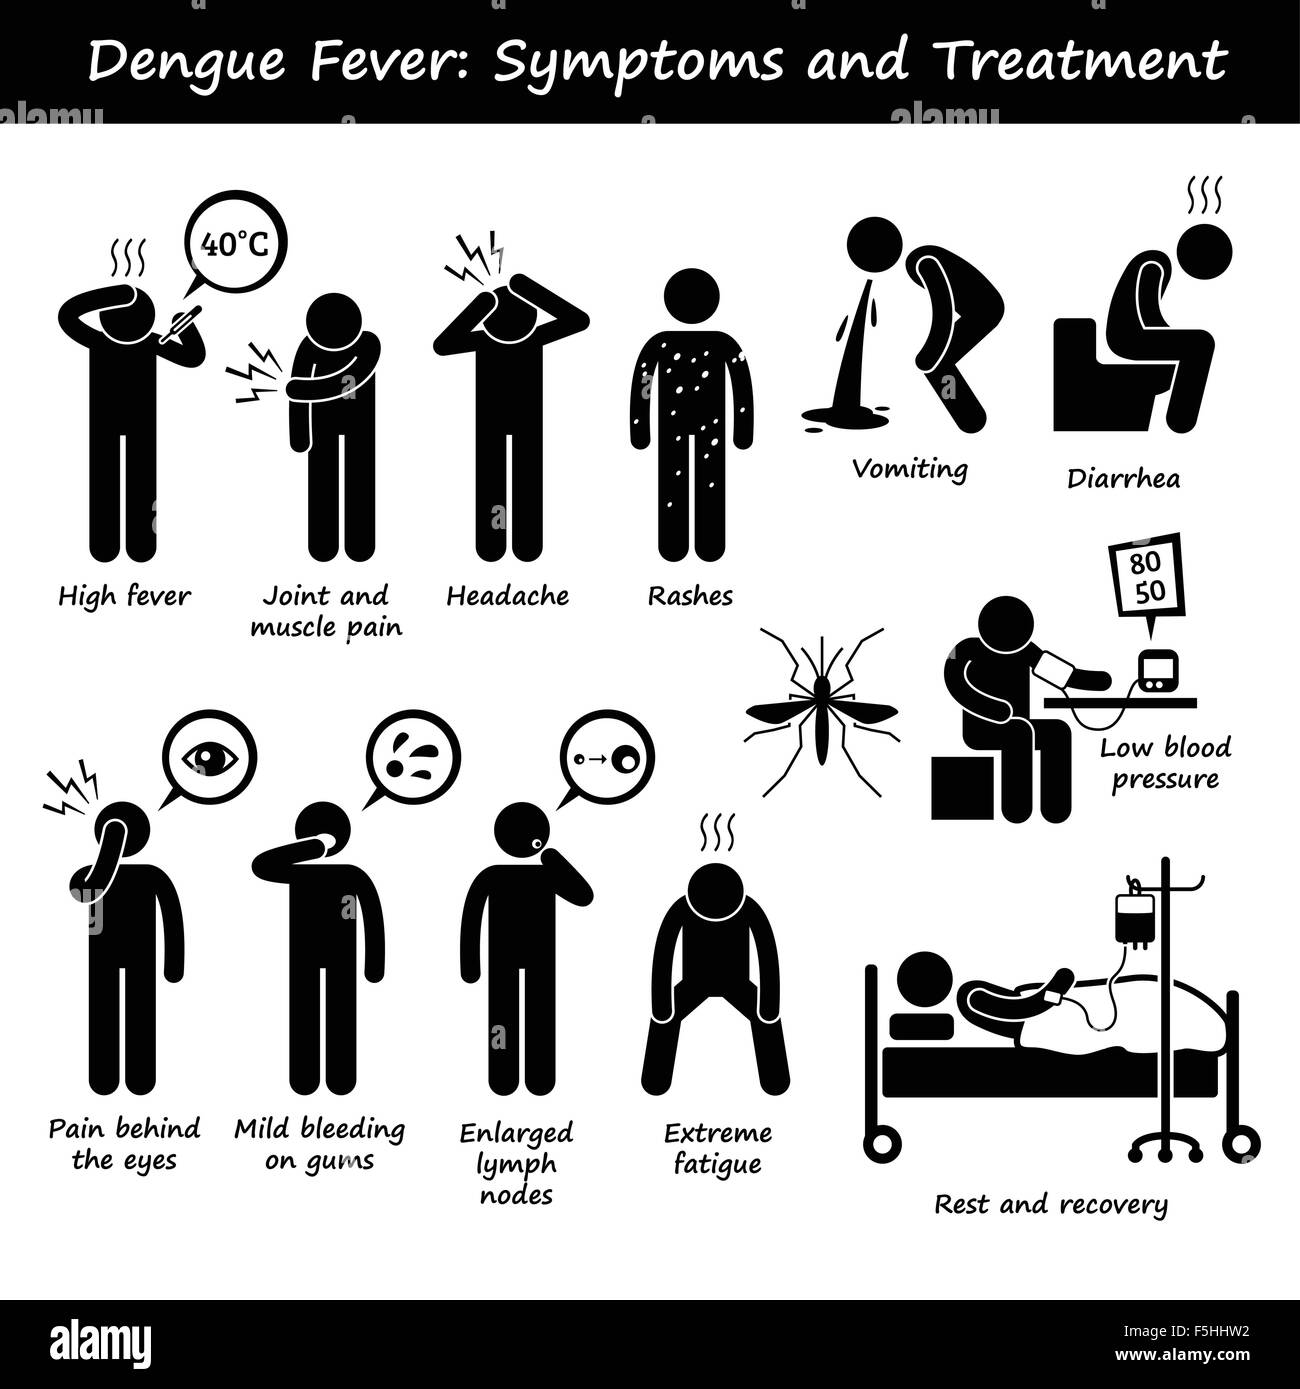 Dengue Fever Symptoms and Treatment Aedes Mosquito Stick Figure Pictogram Icons - Stock Image